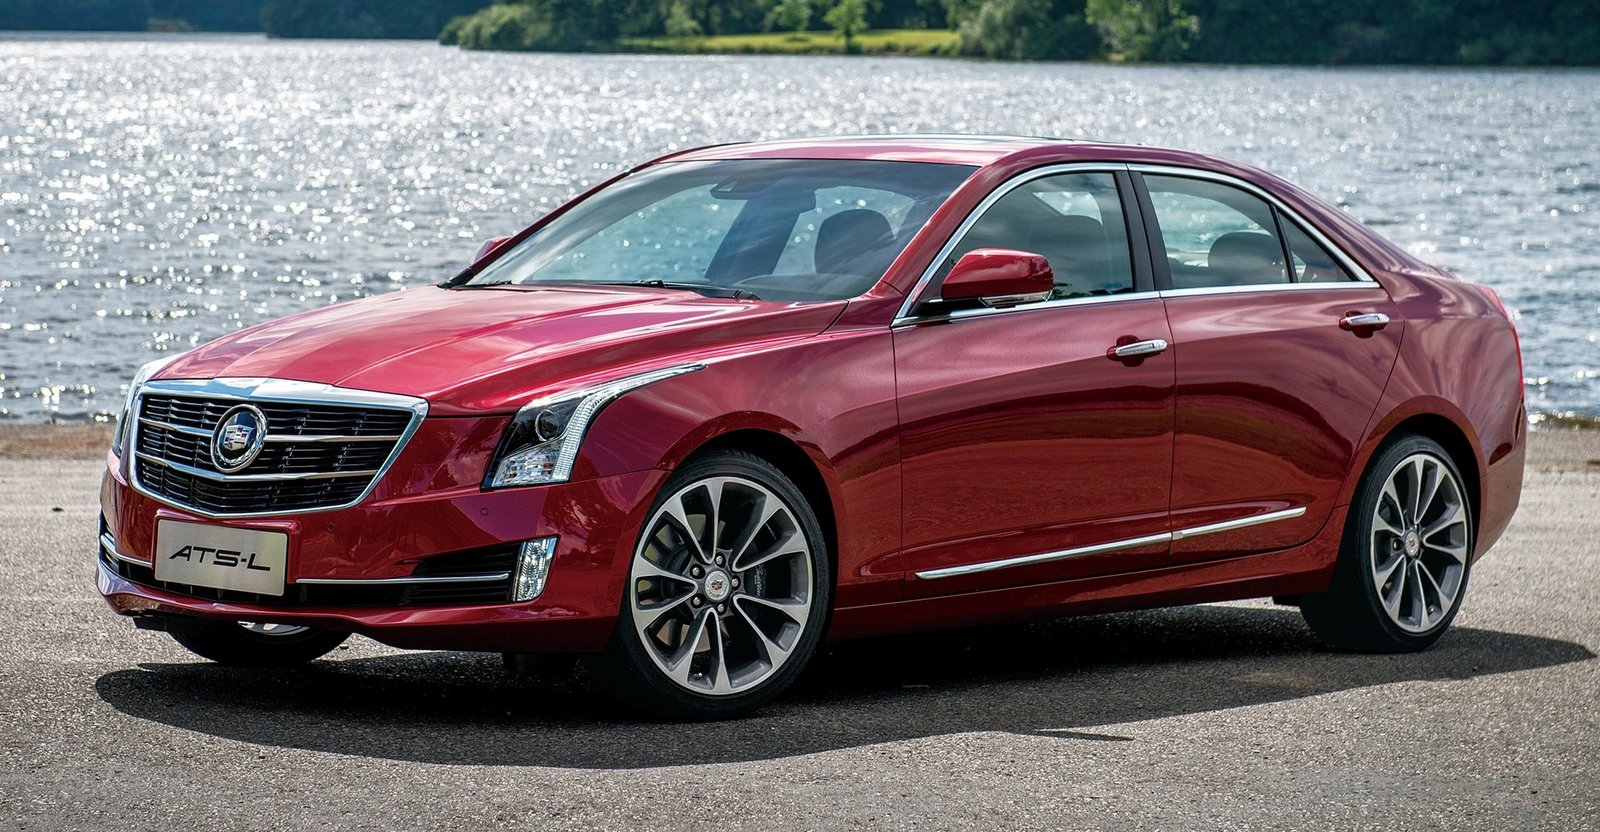 2015 cadillac ats l picture 562389 car review top speed. Black Bedroom Furniture Sets. Home Design Ideas